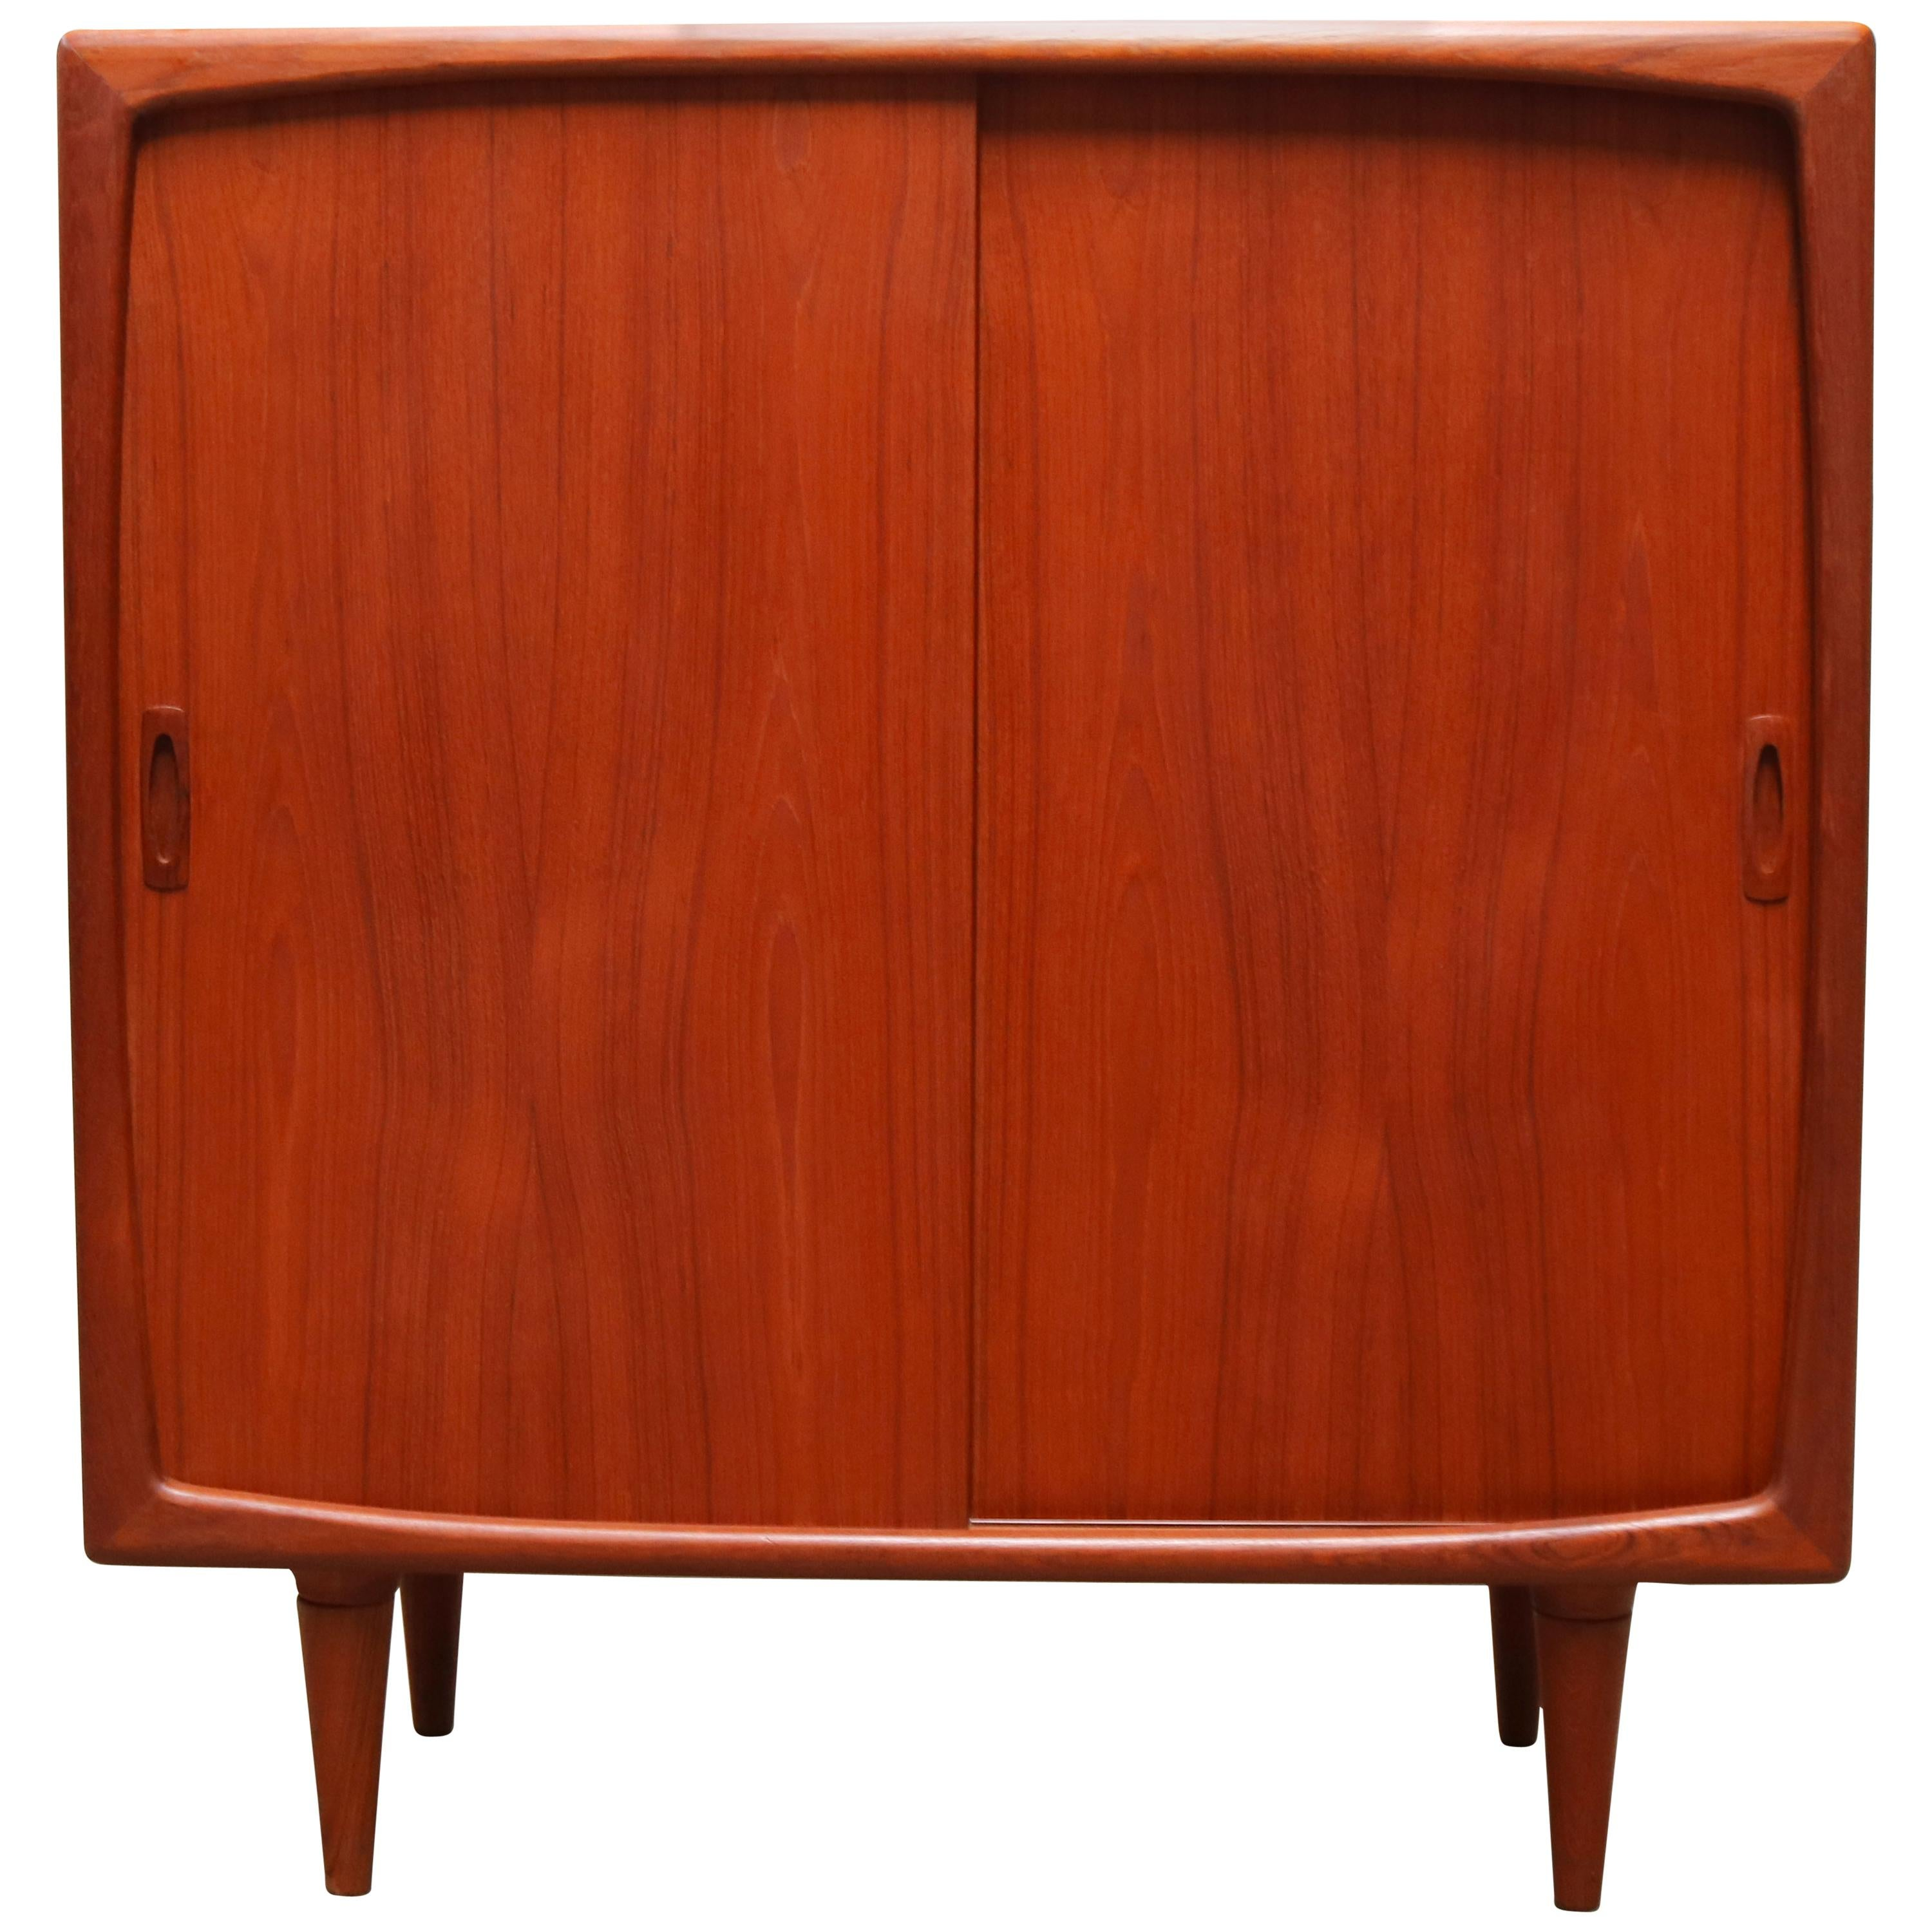 Magnificent Danish Highboard or Cabinet in Sculpted Teak by H.P. Hansen in 1950s